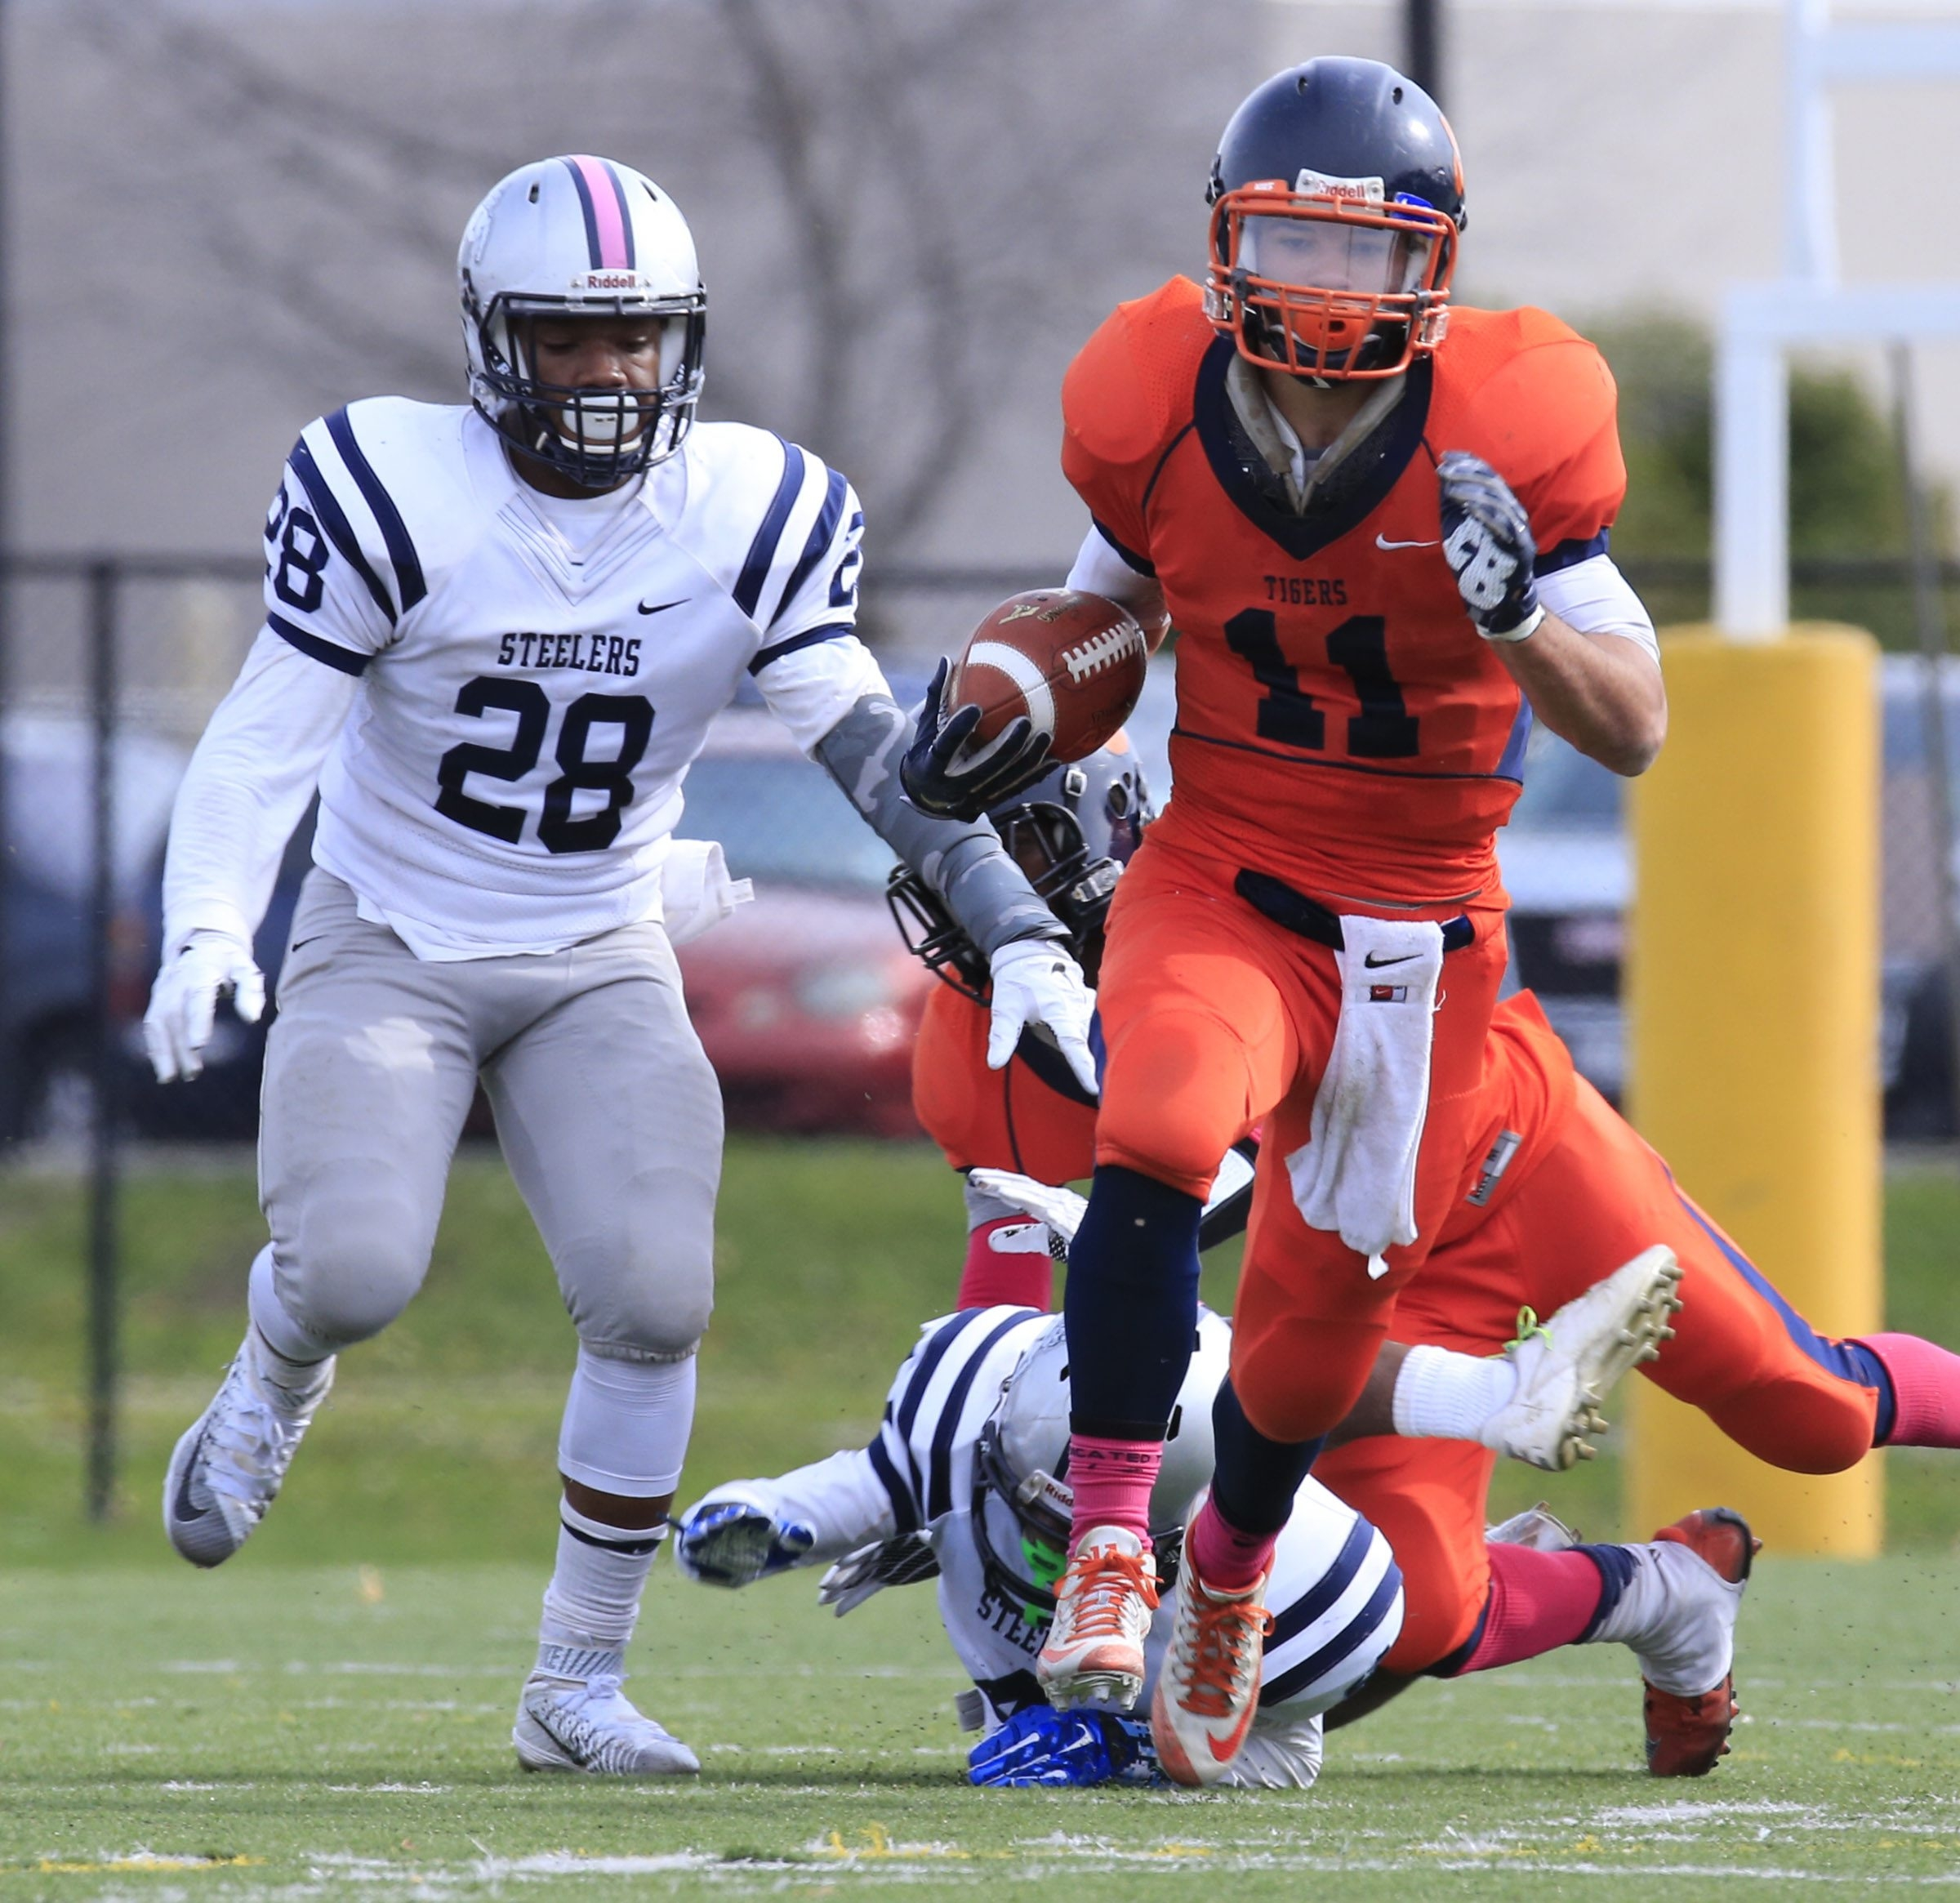 USA Today selected Bennett's Isaiah McDuffie as its New York Defensive Player of the Year.